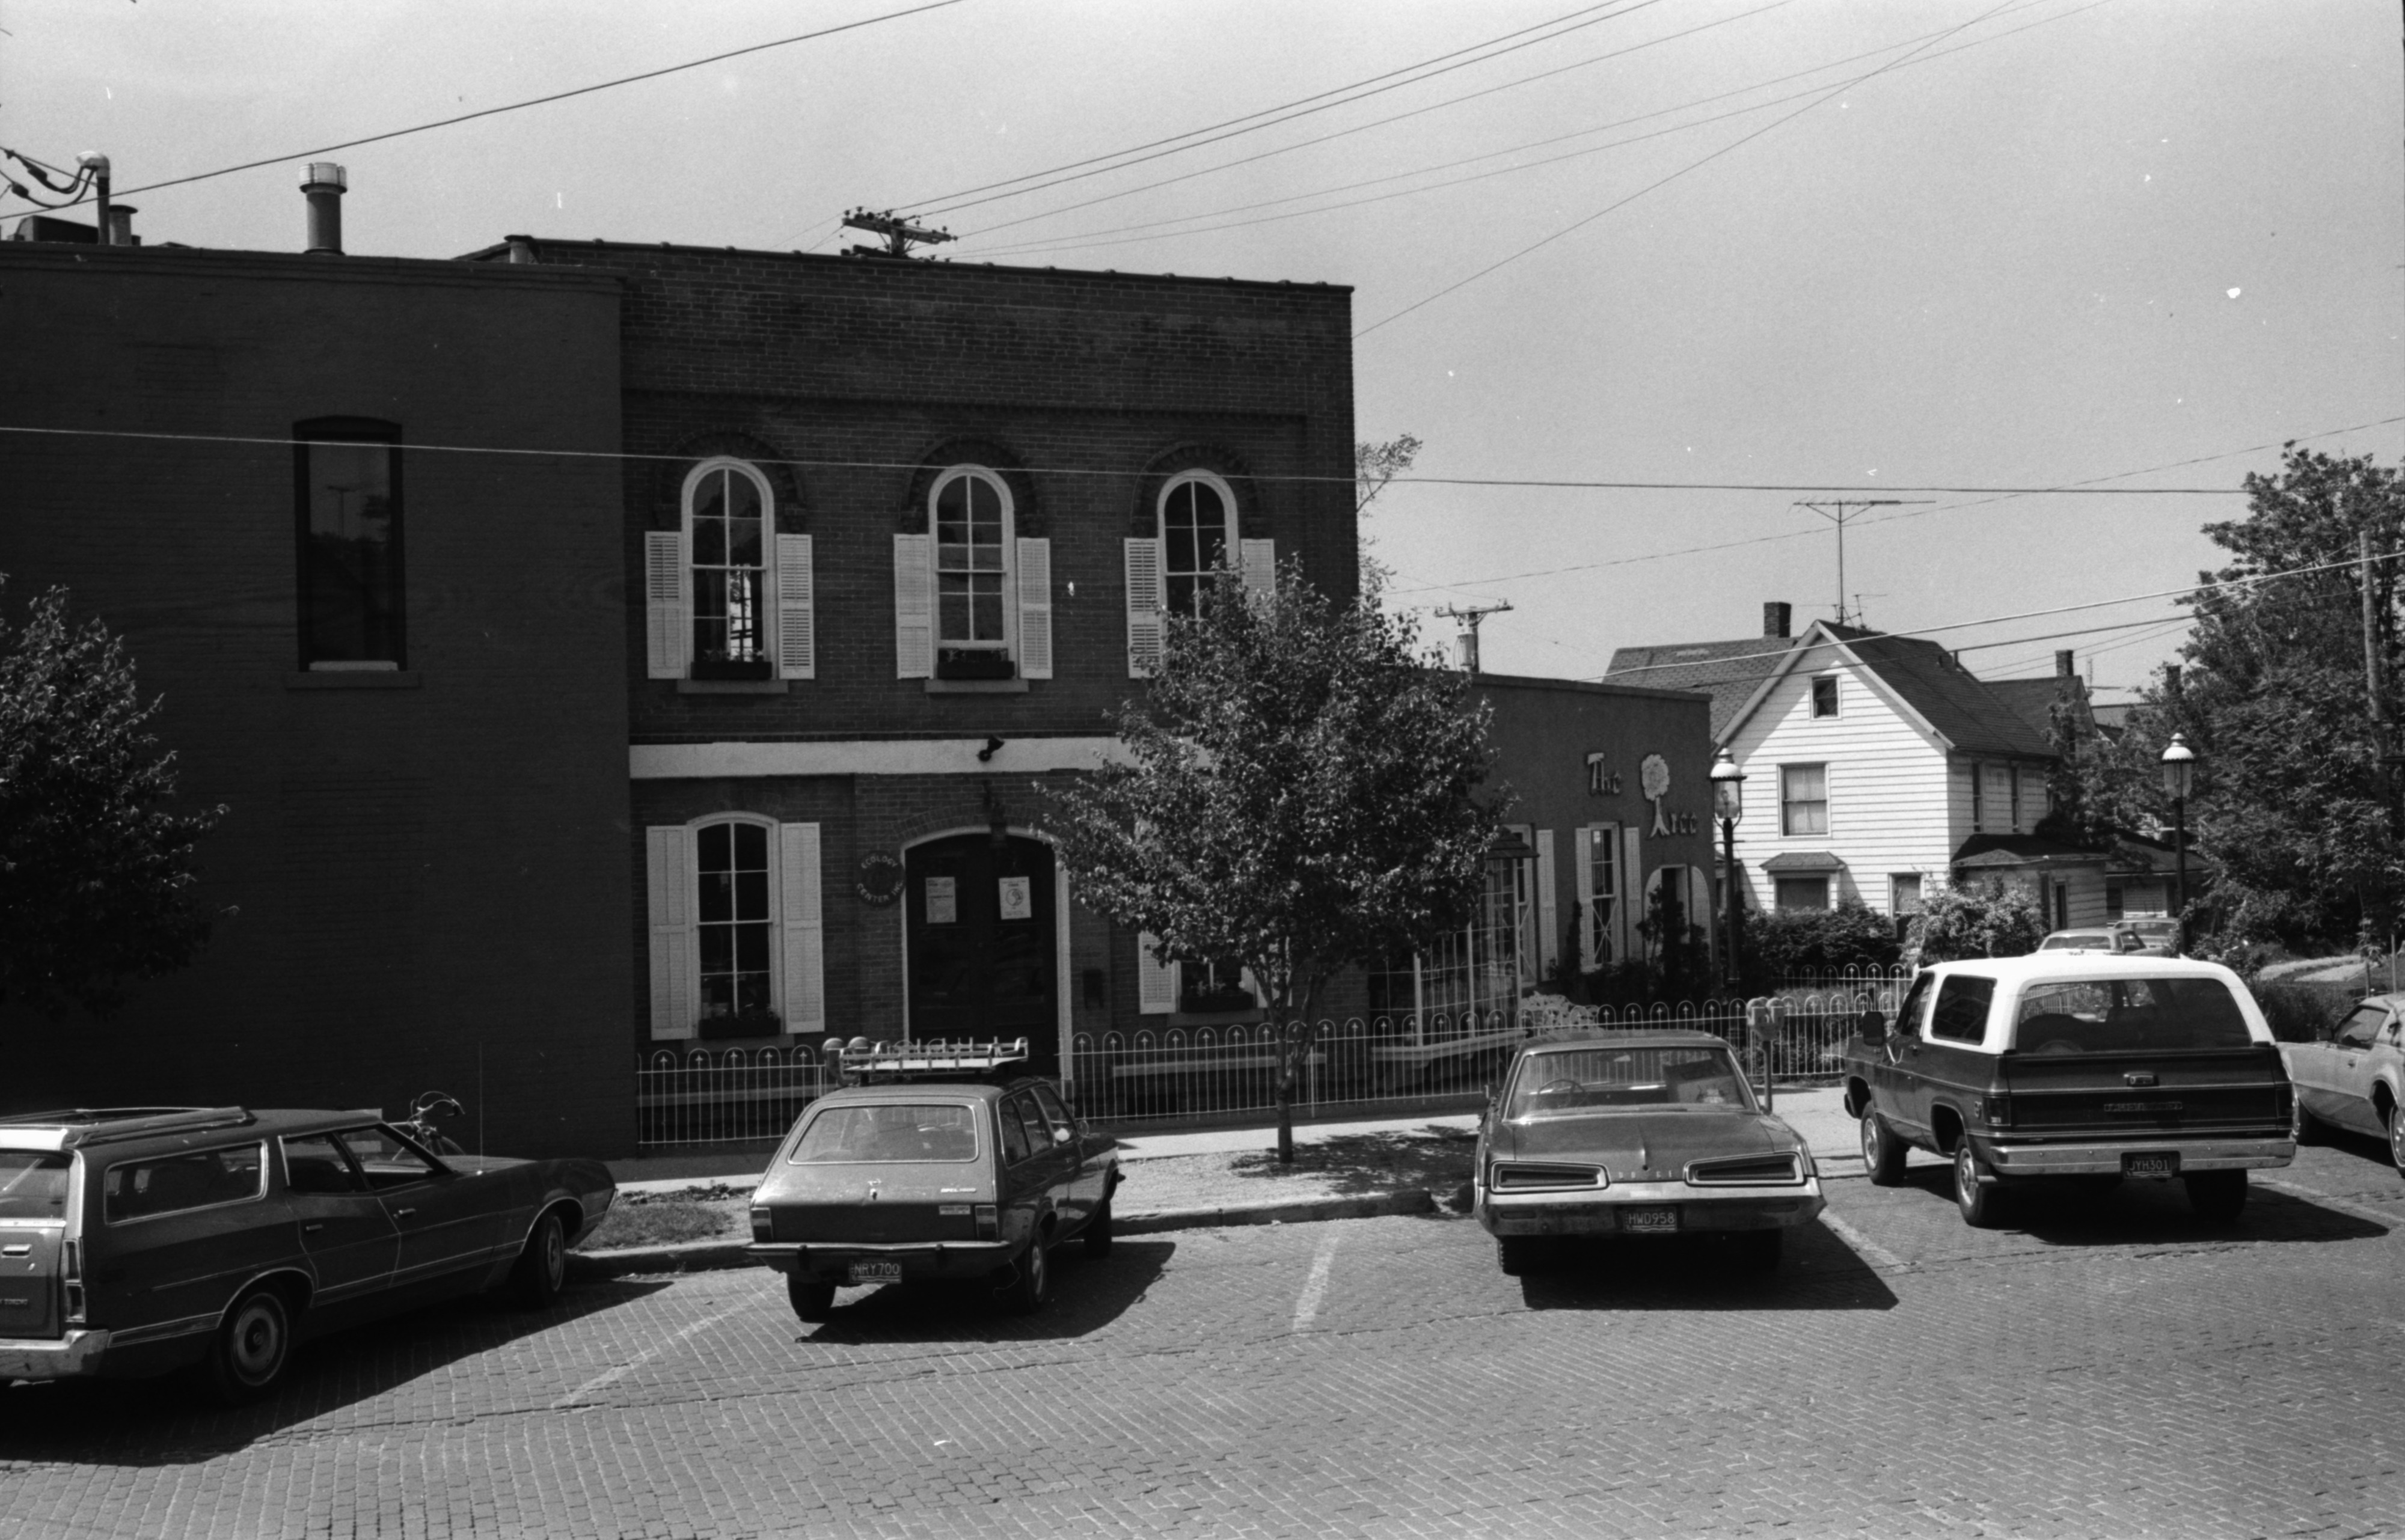 View of the Ecology Center and The Tree on Detroit Street, June 1976 image